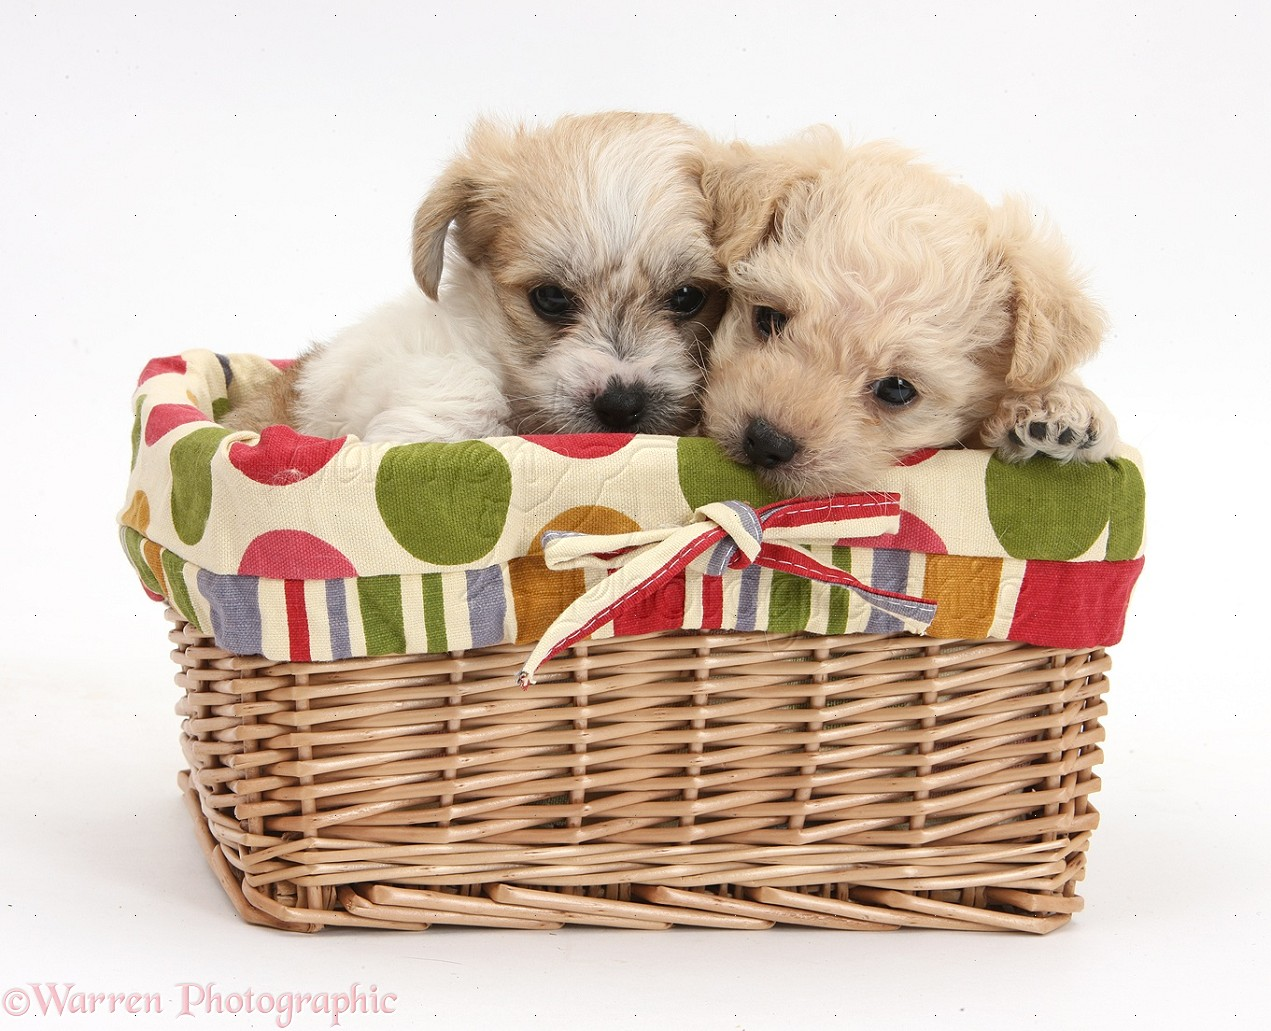 Dogs Cute Bichon X Yorkie Puppies In A Basket Photo Wp37385